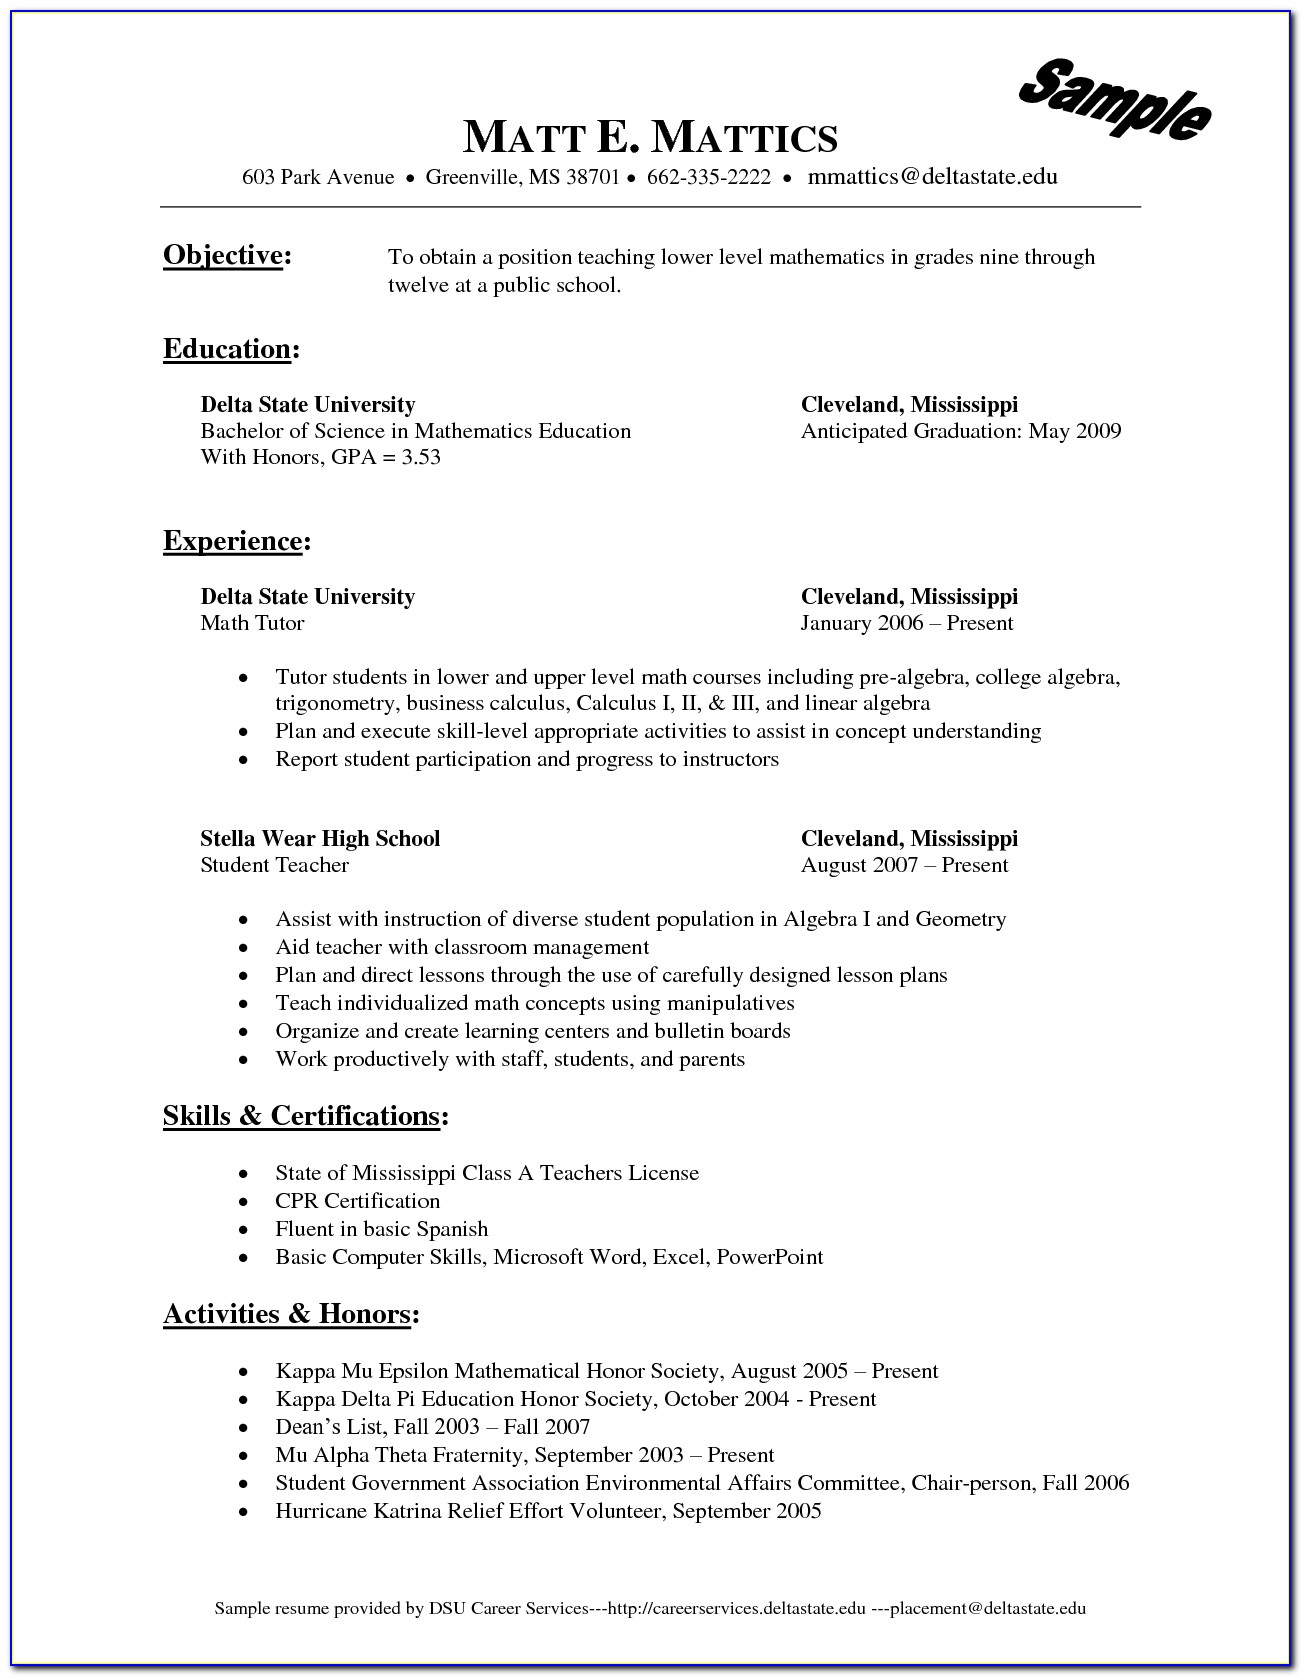 Job Resume Sample Wordpad Resume Template Free Wordpad Resume Regarding Word Resume Template Free